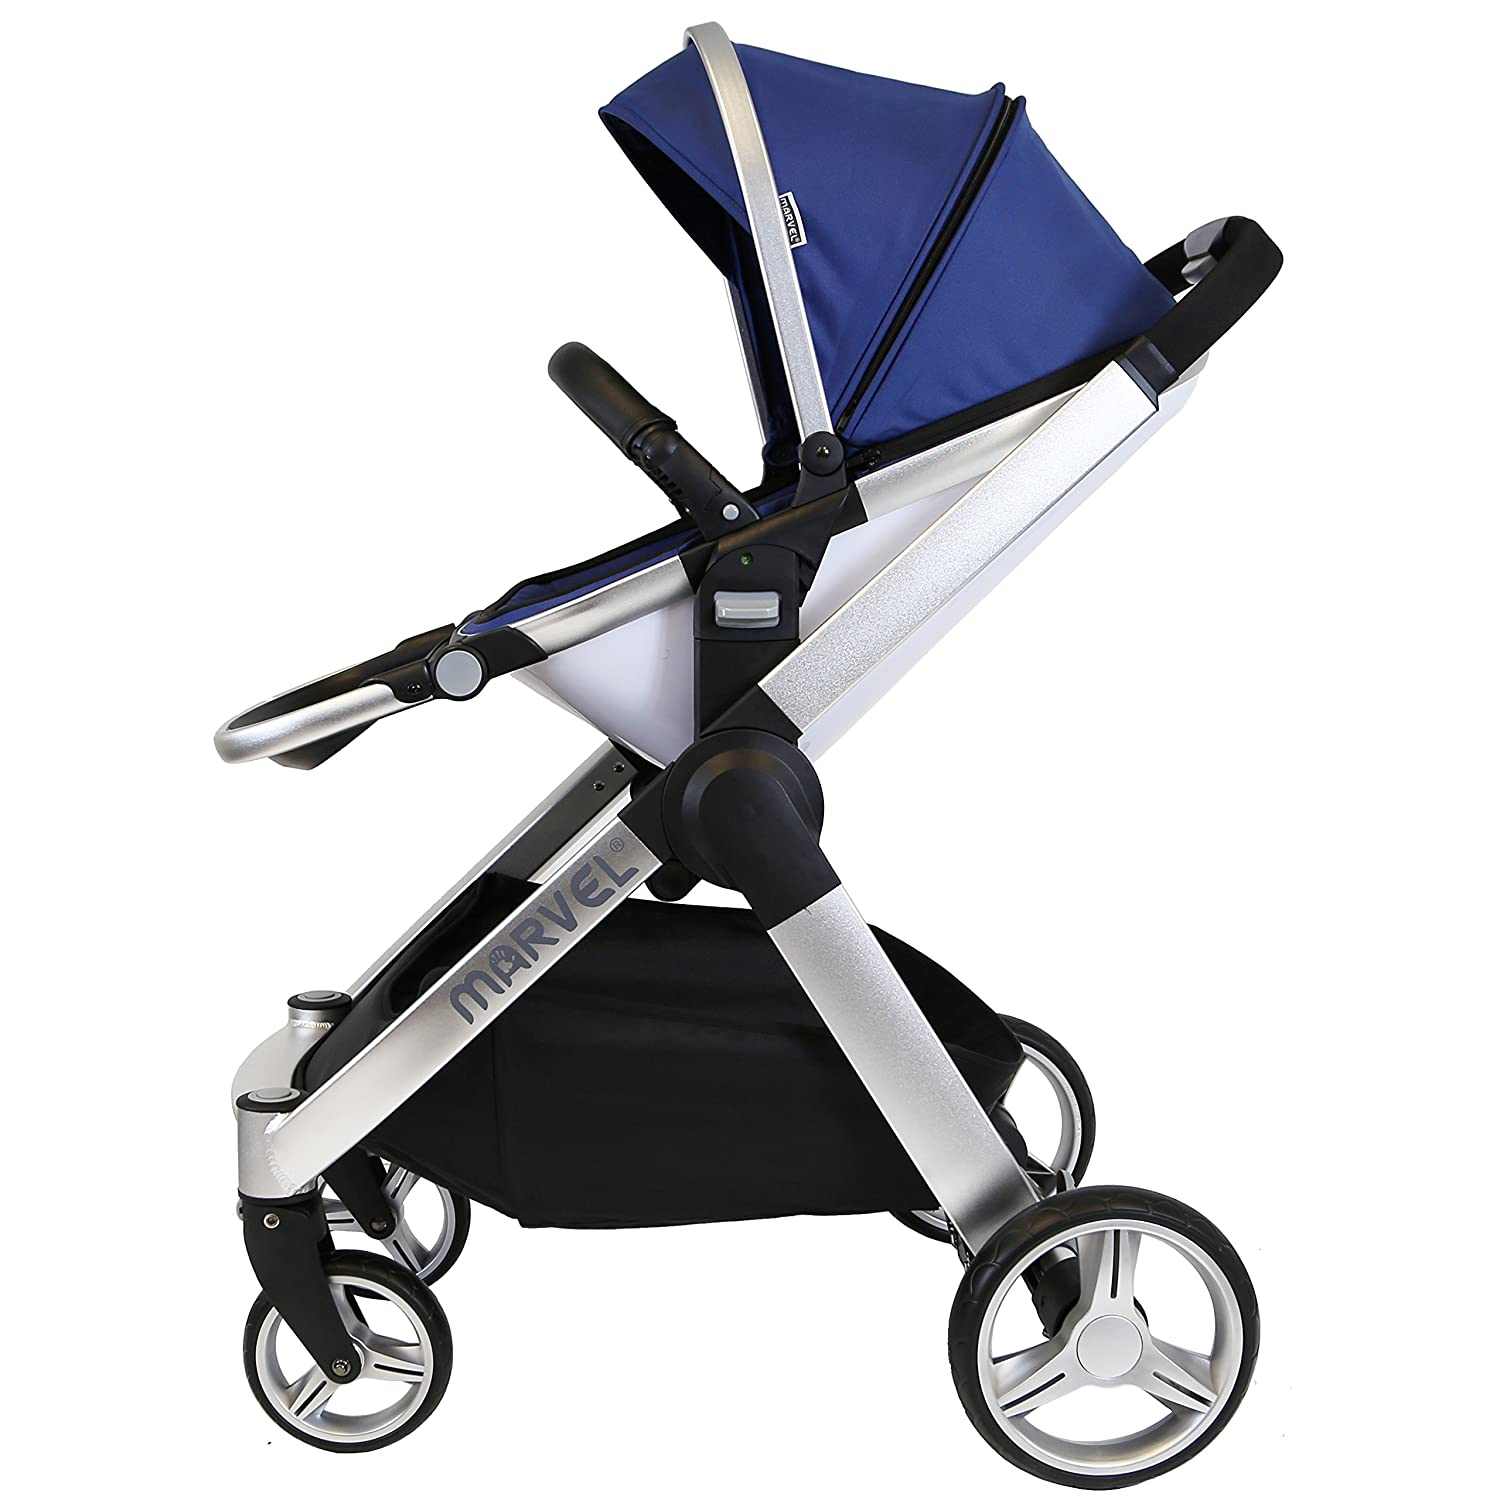 2017 Marvel 2in1 Pram Stroller Only Ocean Pearl Complete With Rain Cover